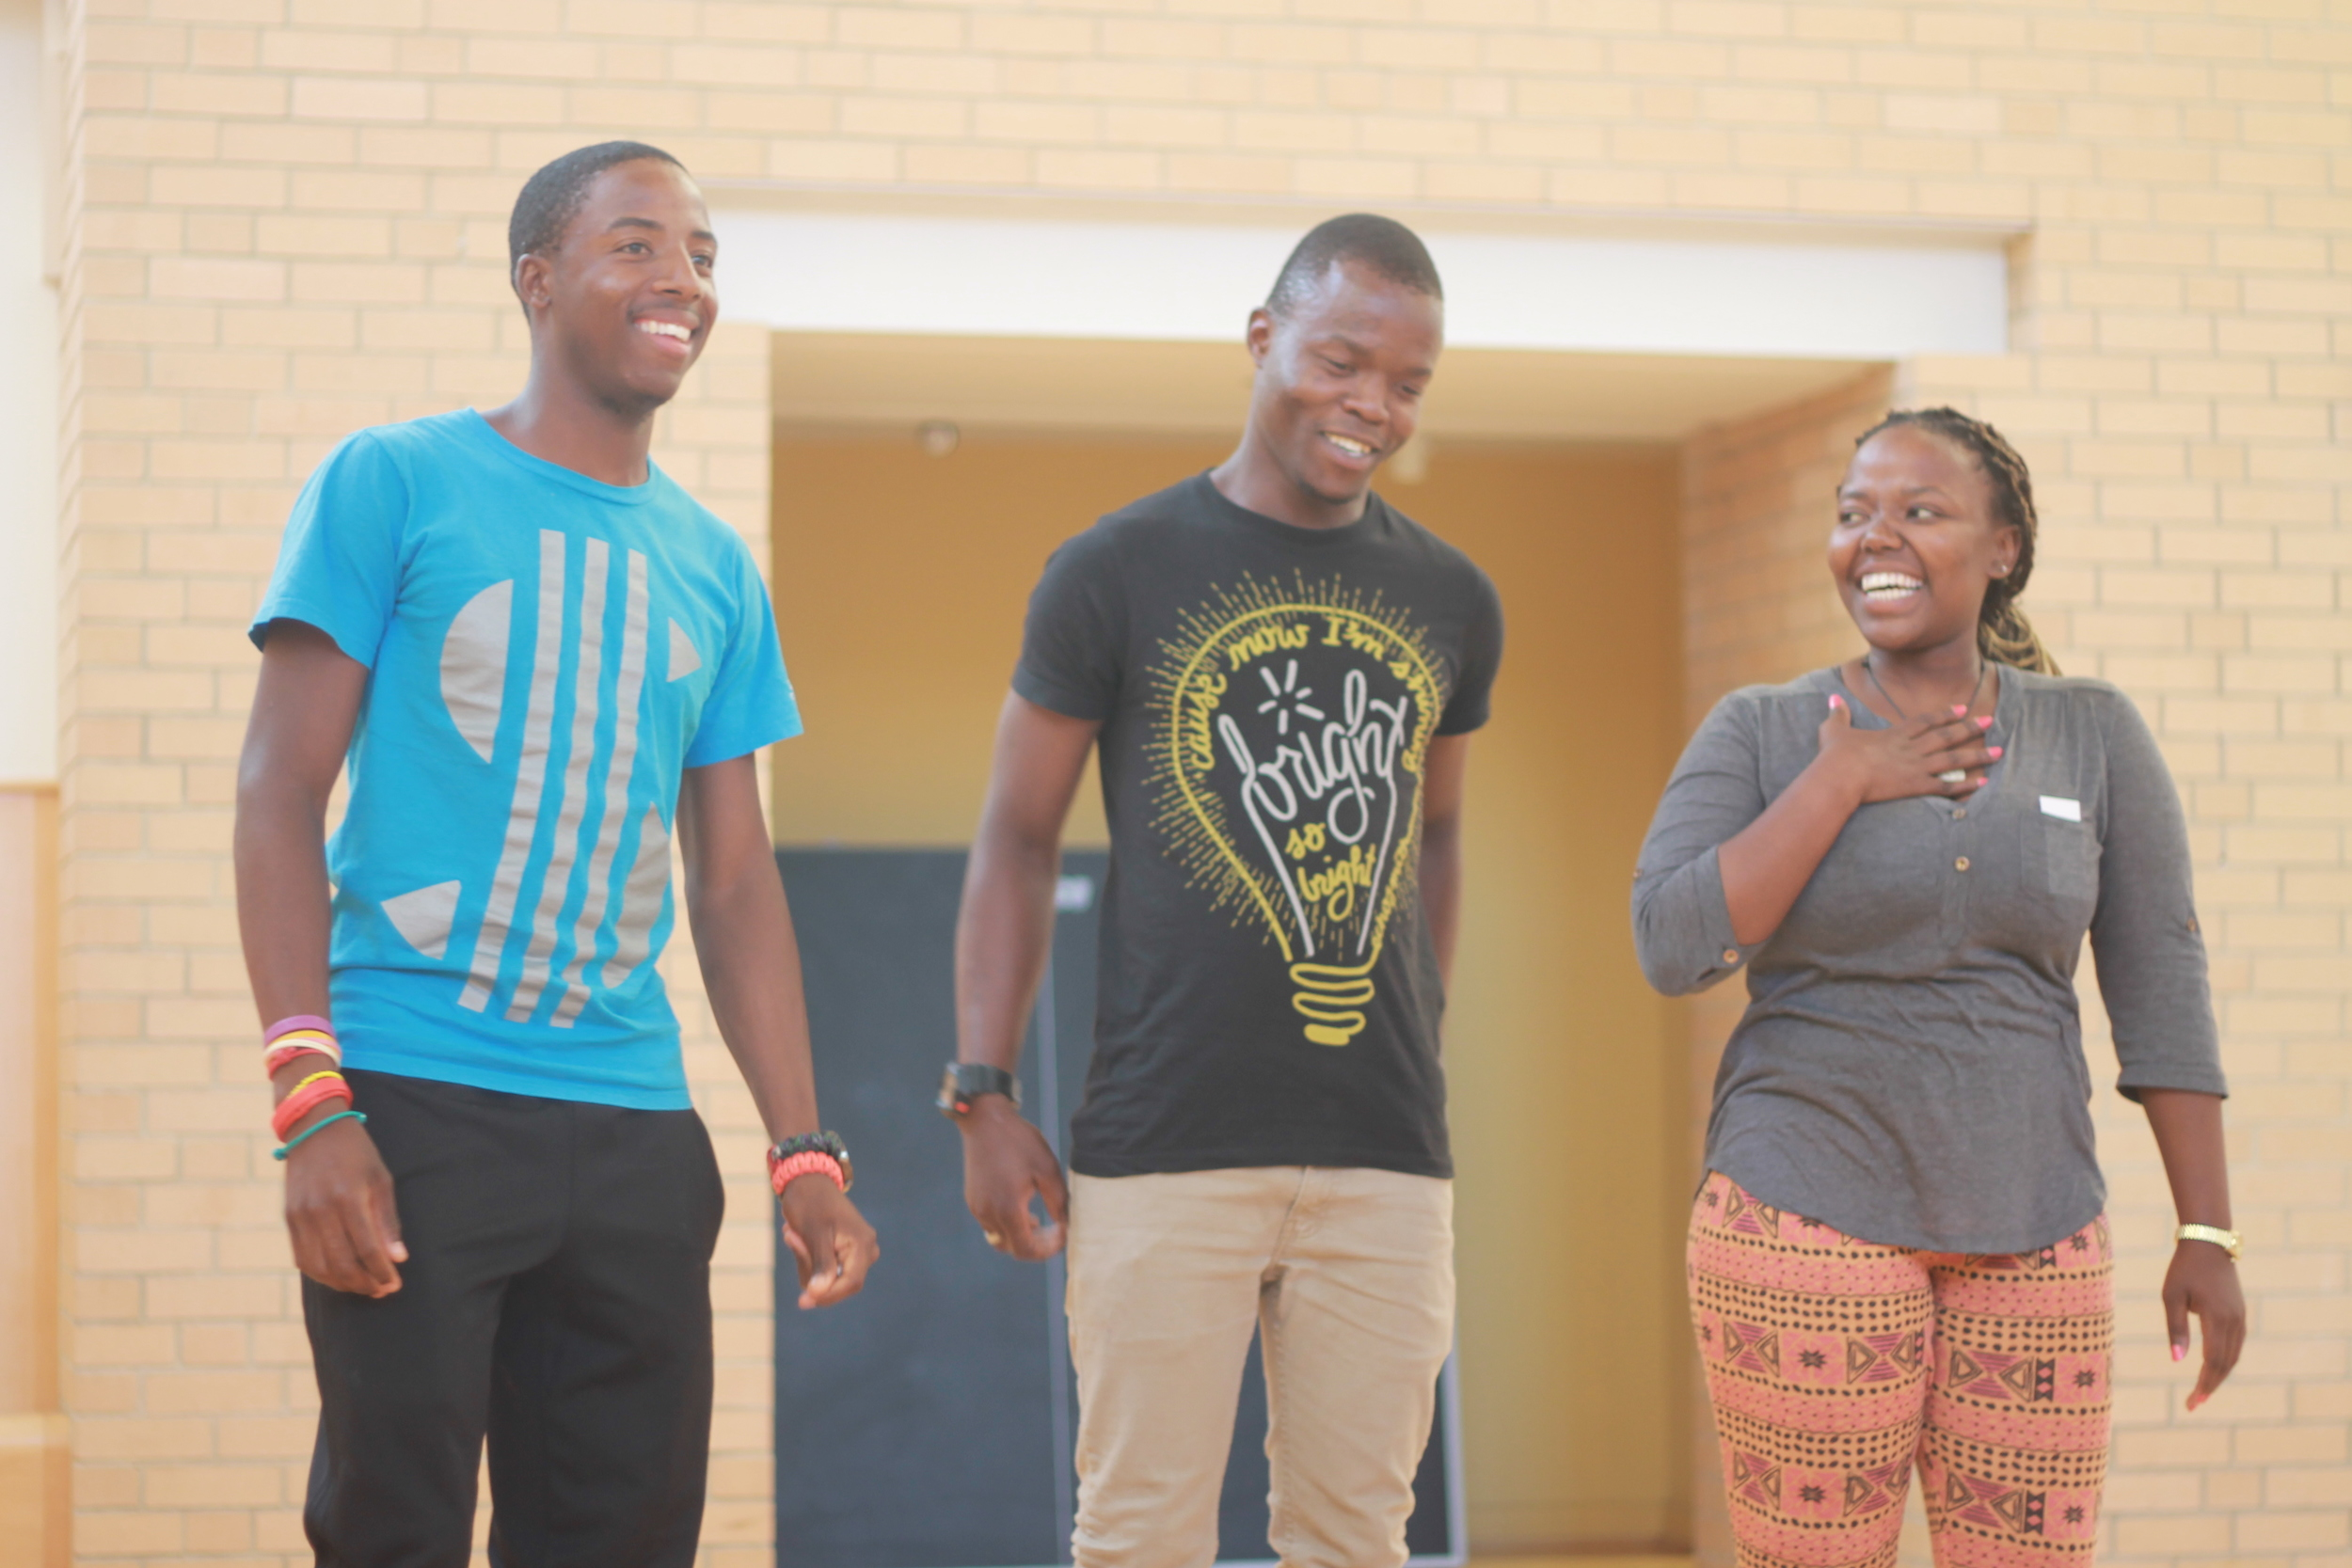 Vochellis Sifiso, Kay, and Thembi